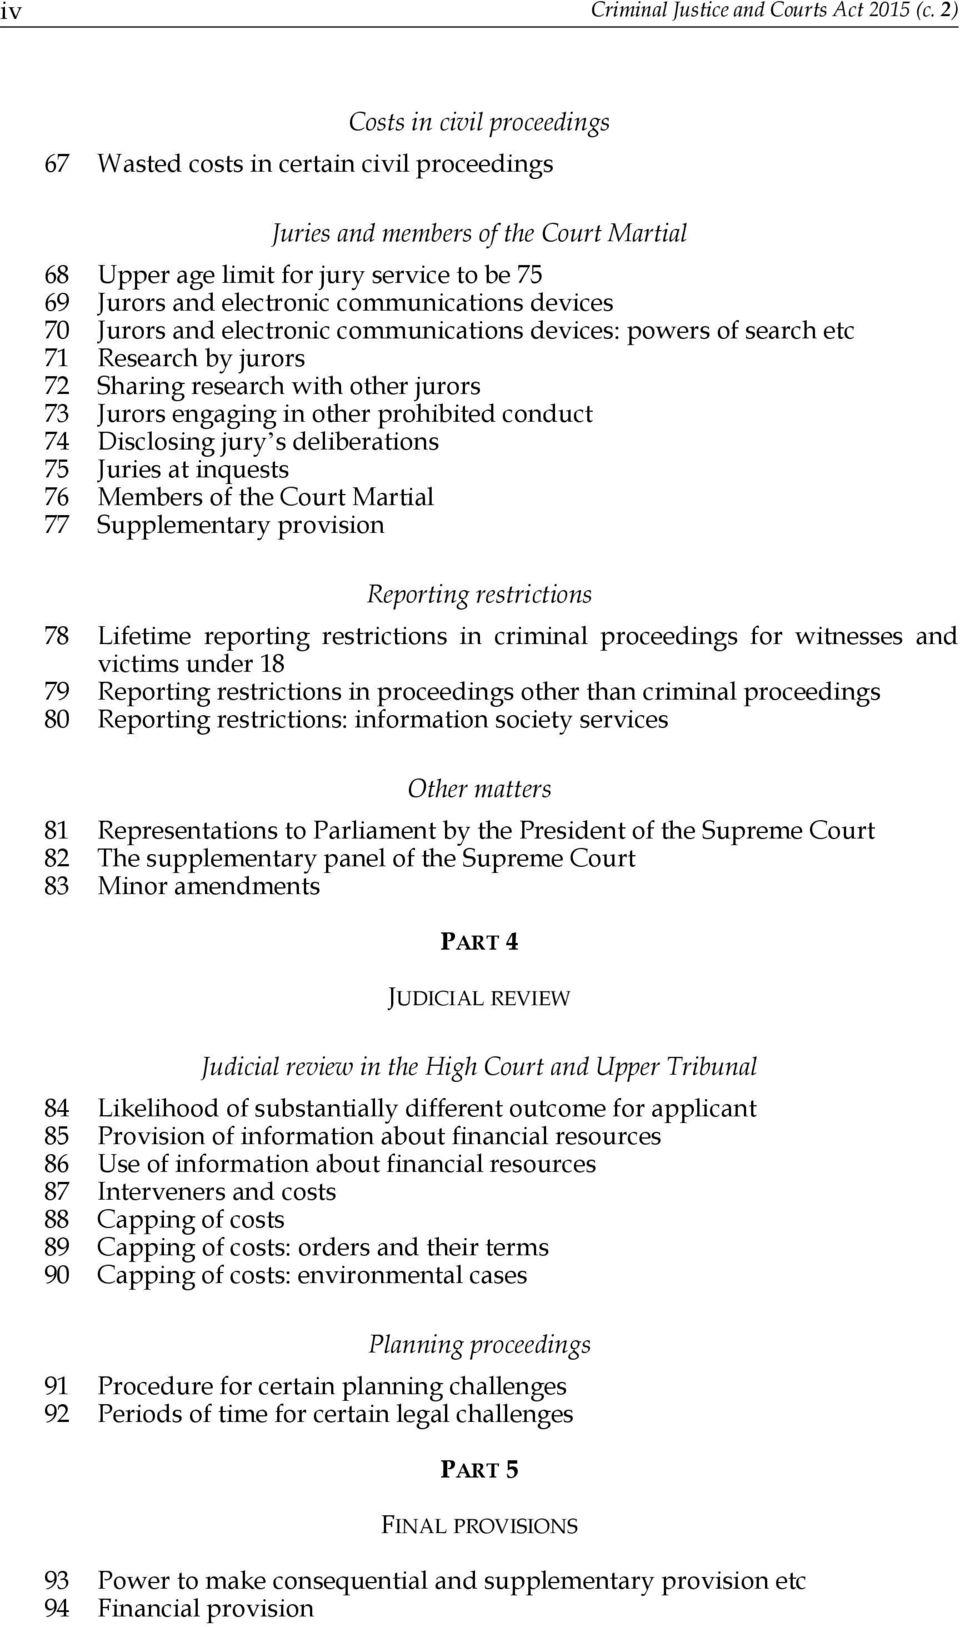 devices 70 Jurors and electronic communications devices: powers of search etc 71 Research by jurors 72 Sharing research with other jurors 73 Jurors engaging in other prohibited conduct 74 Disclosing